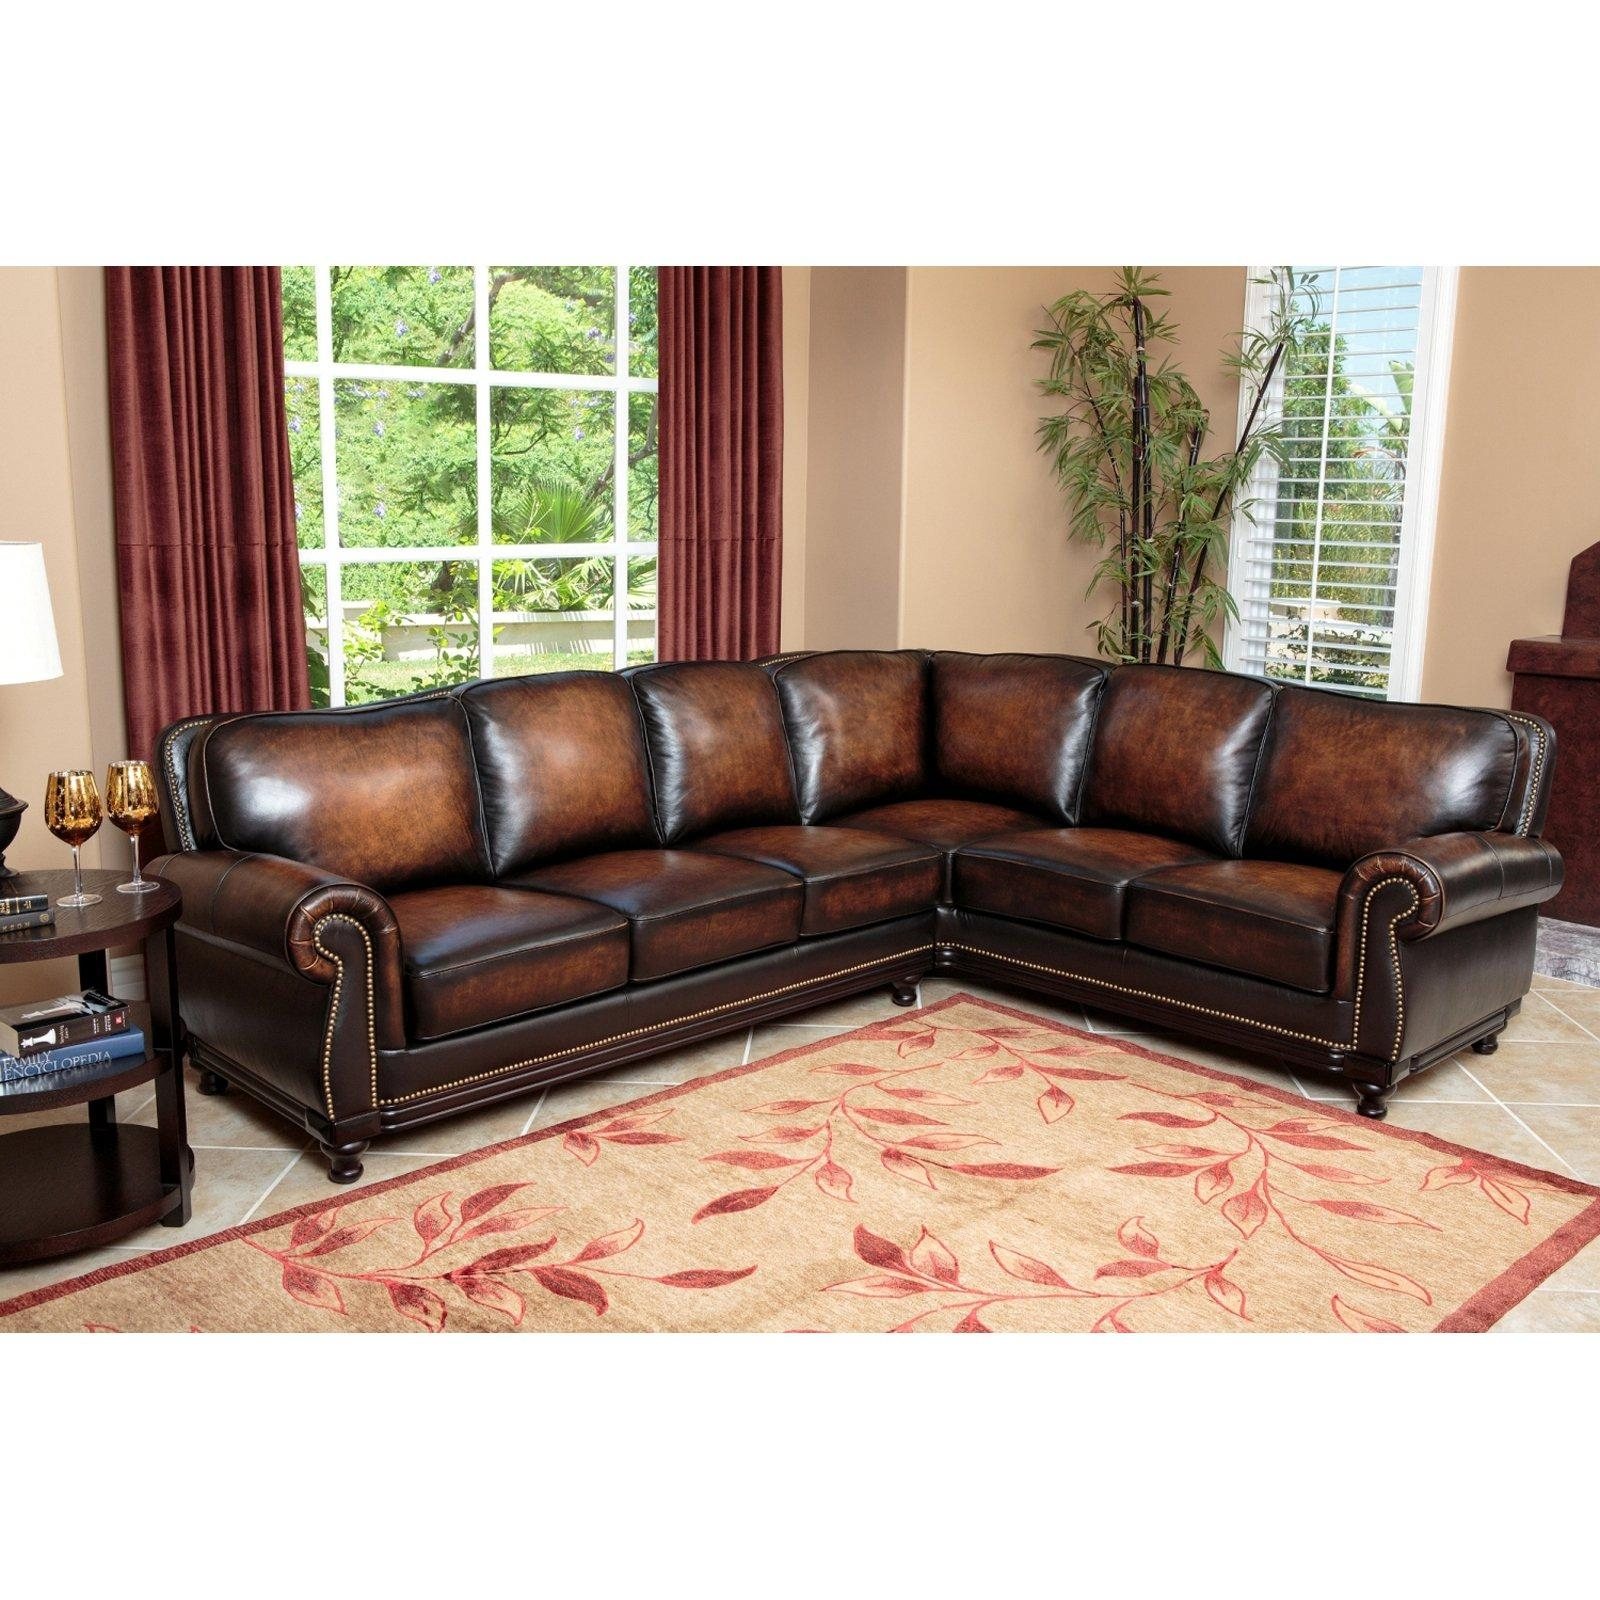 Abbyson Tekana Premium Italian Leather Sectional Sofa – Dark Brown With Regard To Abbyson Living Sectional (View 9 of 15)